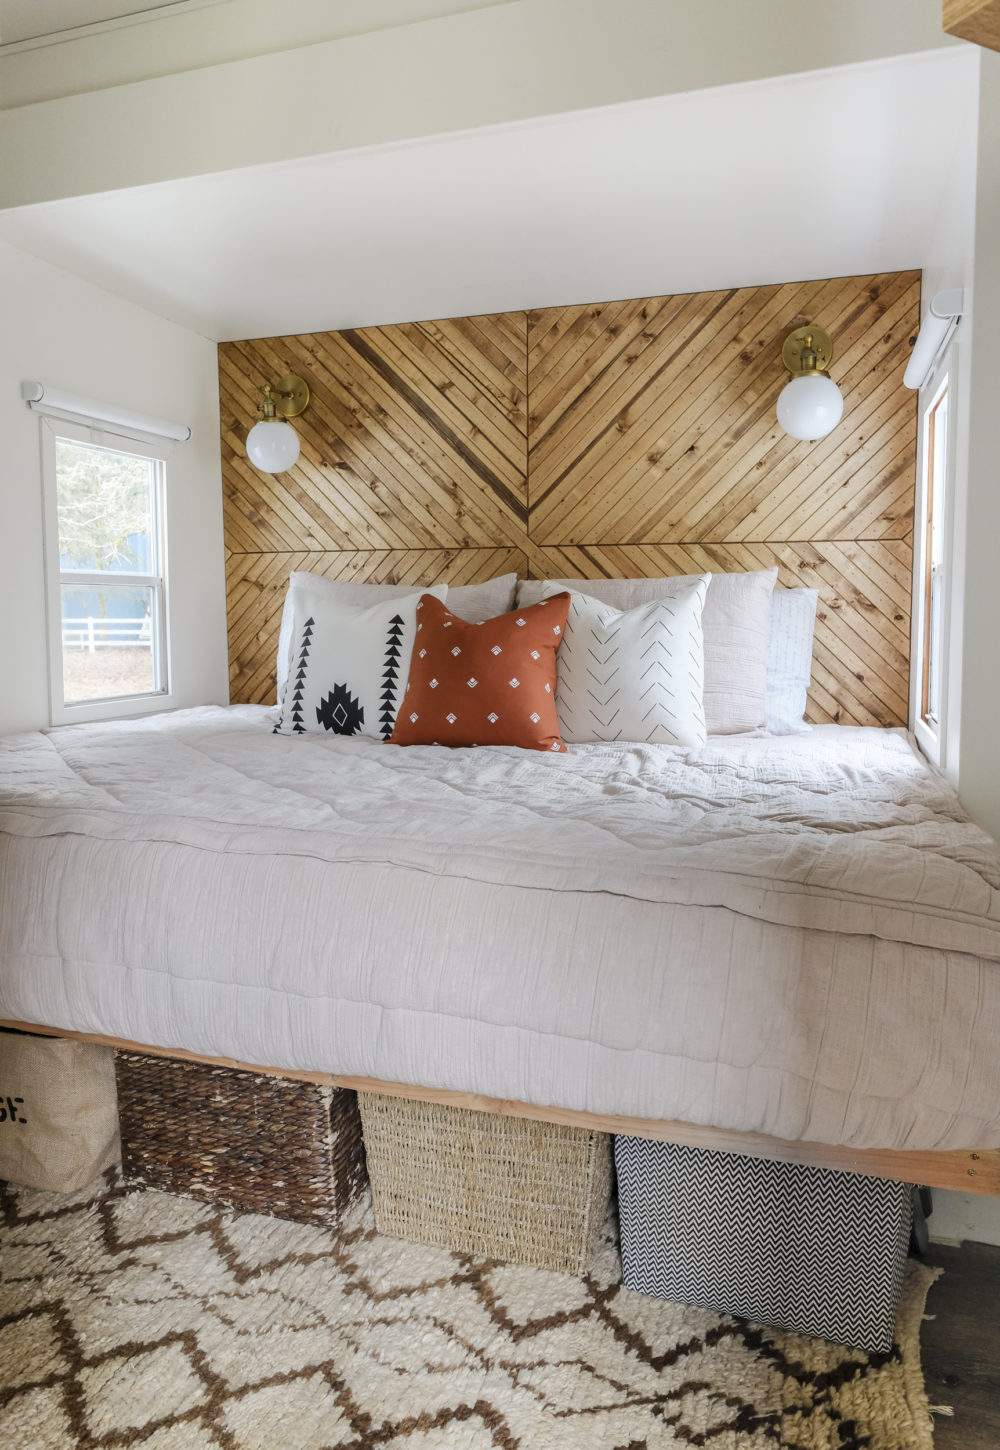 RV bedroom remodel with underbed storage and a geometric wood plank accent wall